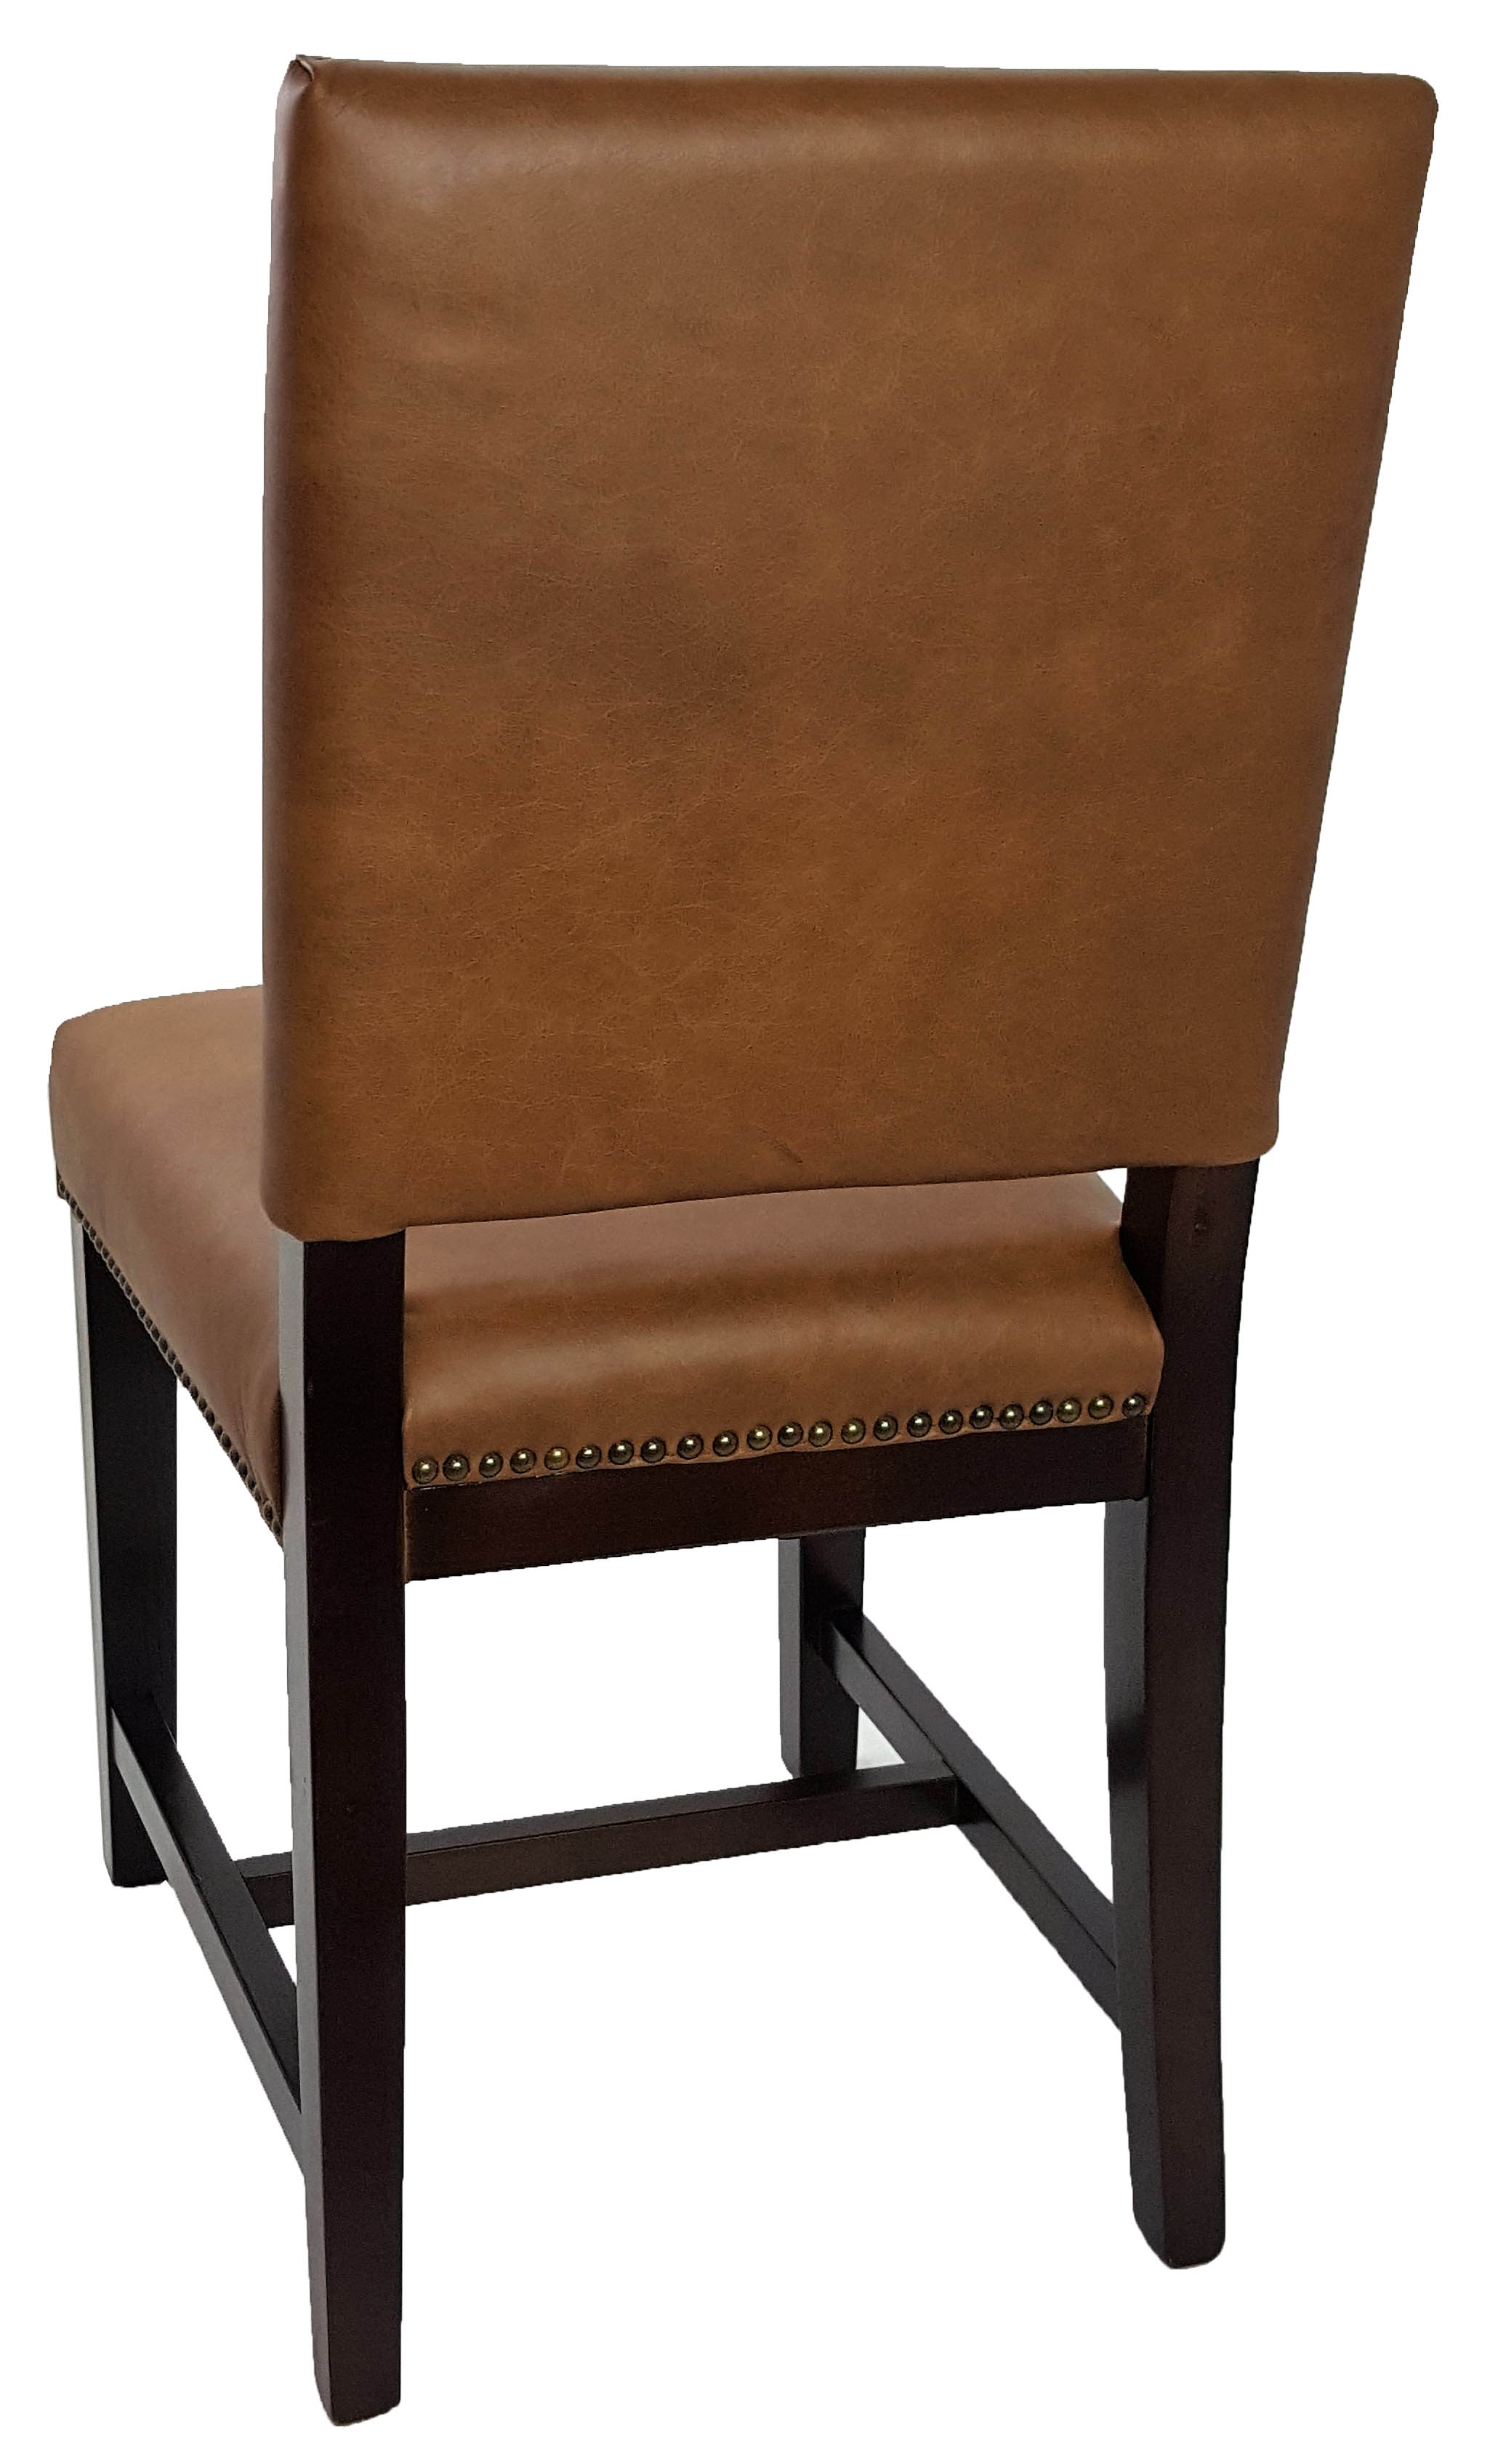 leather kitchen chair r db antique brown dinning chair new